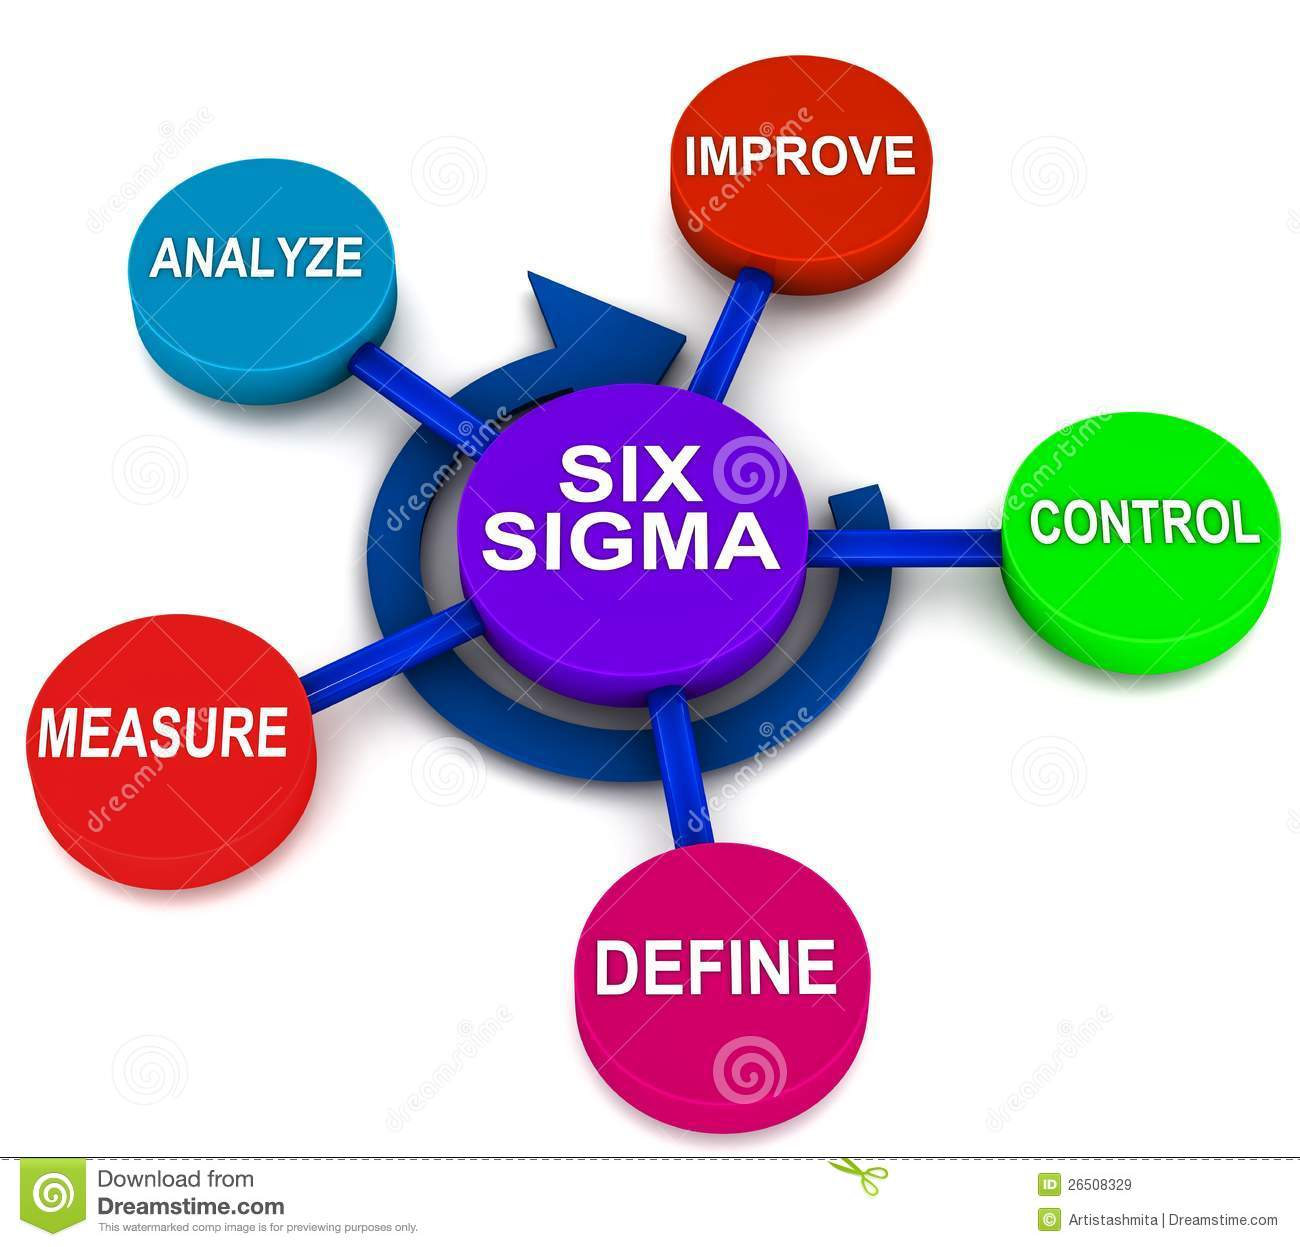 dmaic sigma six dmadv define improve process control 6sigma royalty analyze measure methodology quality using steps dfss difference education 3d